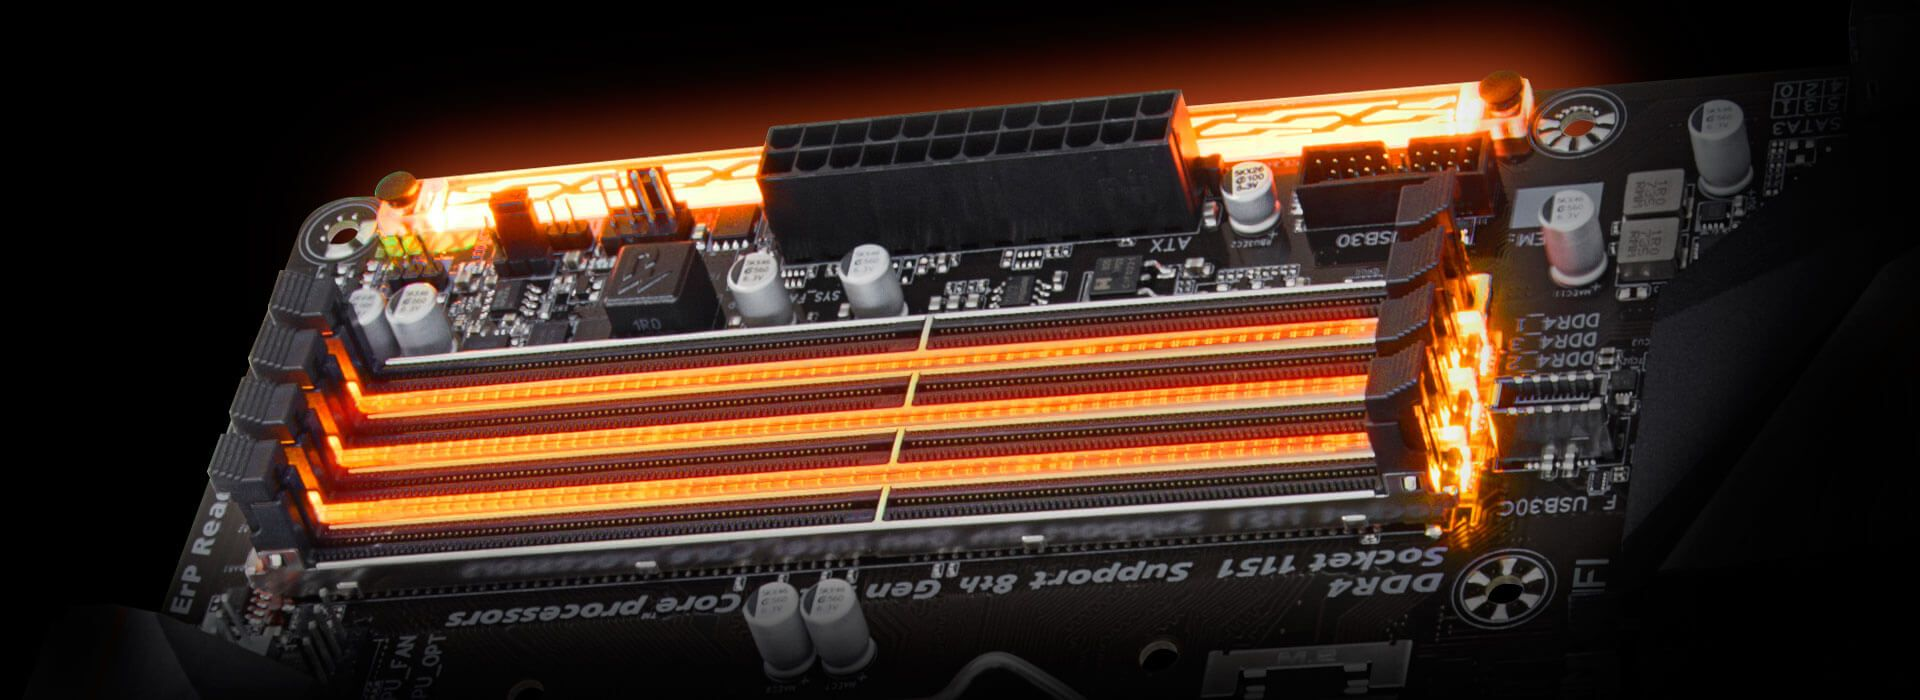 H370 Aorus Gaming 3 Wifi Rev 10 Motherboard Gigabyte Global Pinout Also Vga Cable Diagram Besides Keyboard Connector Multi Light Zones Are Equipped With High Brightness Rgb Leds Namely The Memory Pch Audio And Swappable Overlay For Accent Led When Its All Set Done